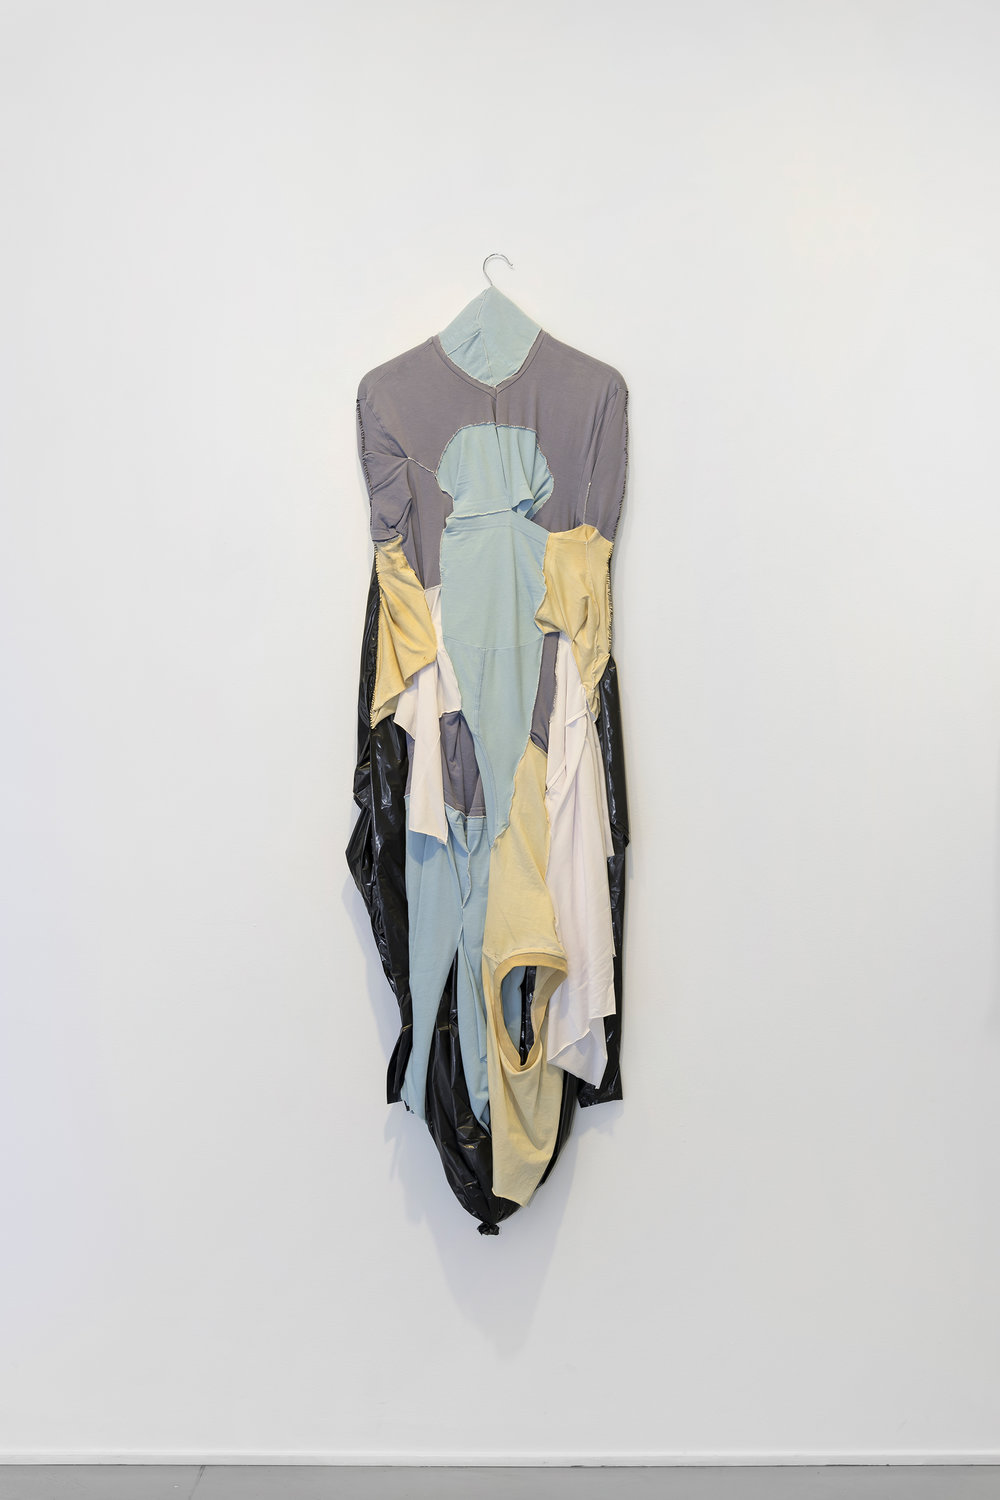 Leif Holmstrand,  Self Portrait (2016),  textile wall sculpture: T-shirt fabric, garbage bag plastic et cetera. Foto: Øystein Thorvaldsen